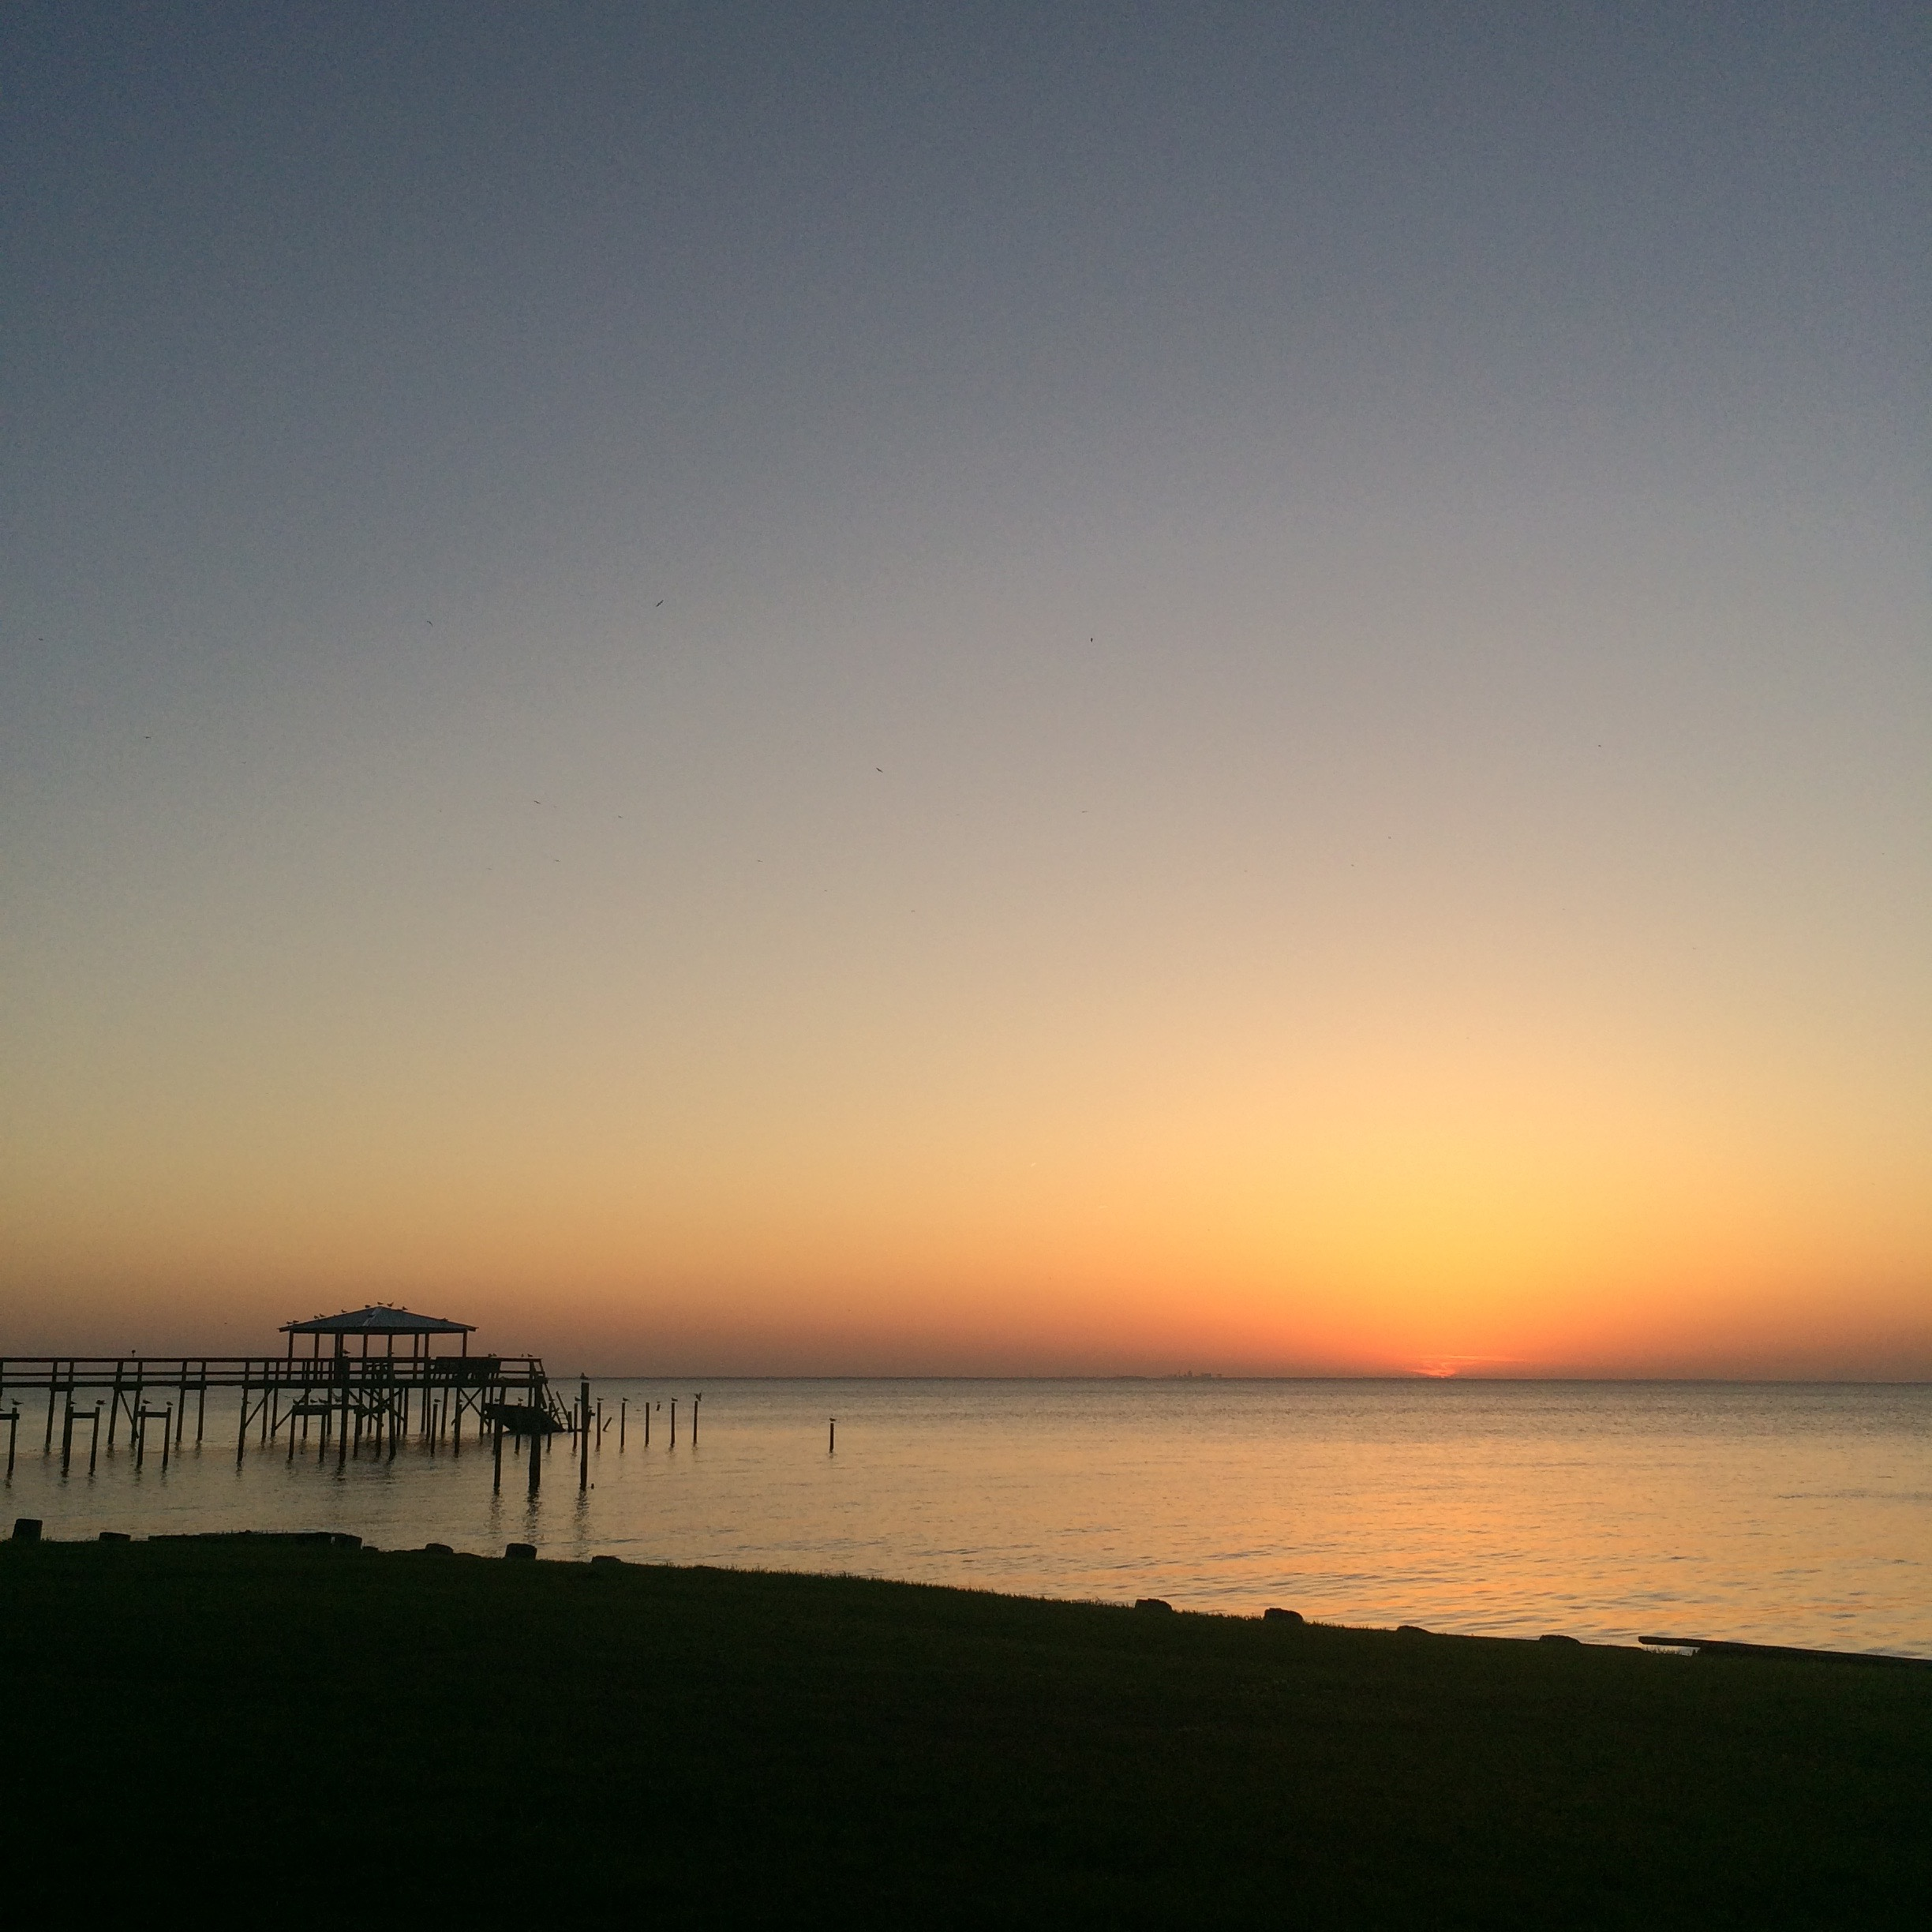 Caption: Sunset overlooking Mobile Bay in Fairhope, Alabama. , Credit: Photo by Tina Antolini.